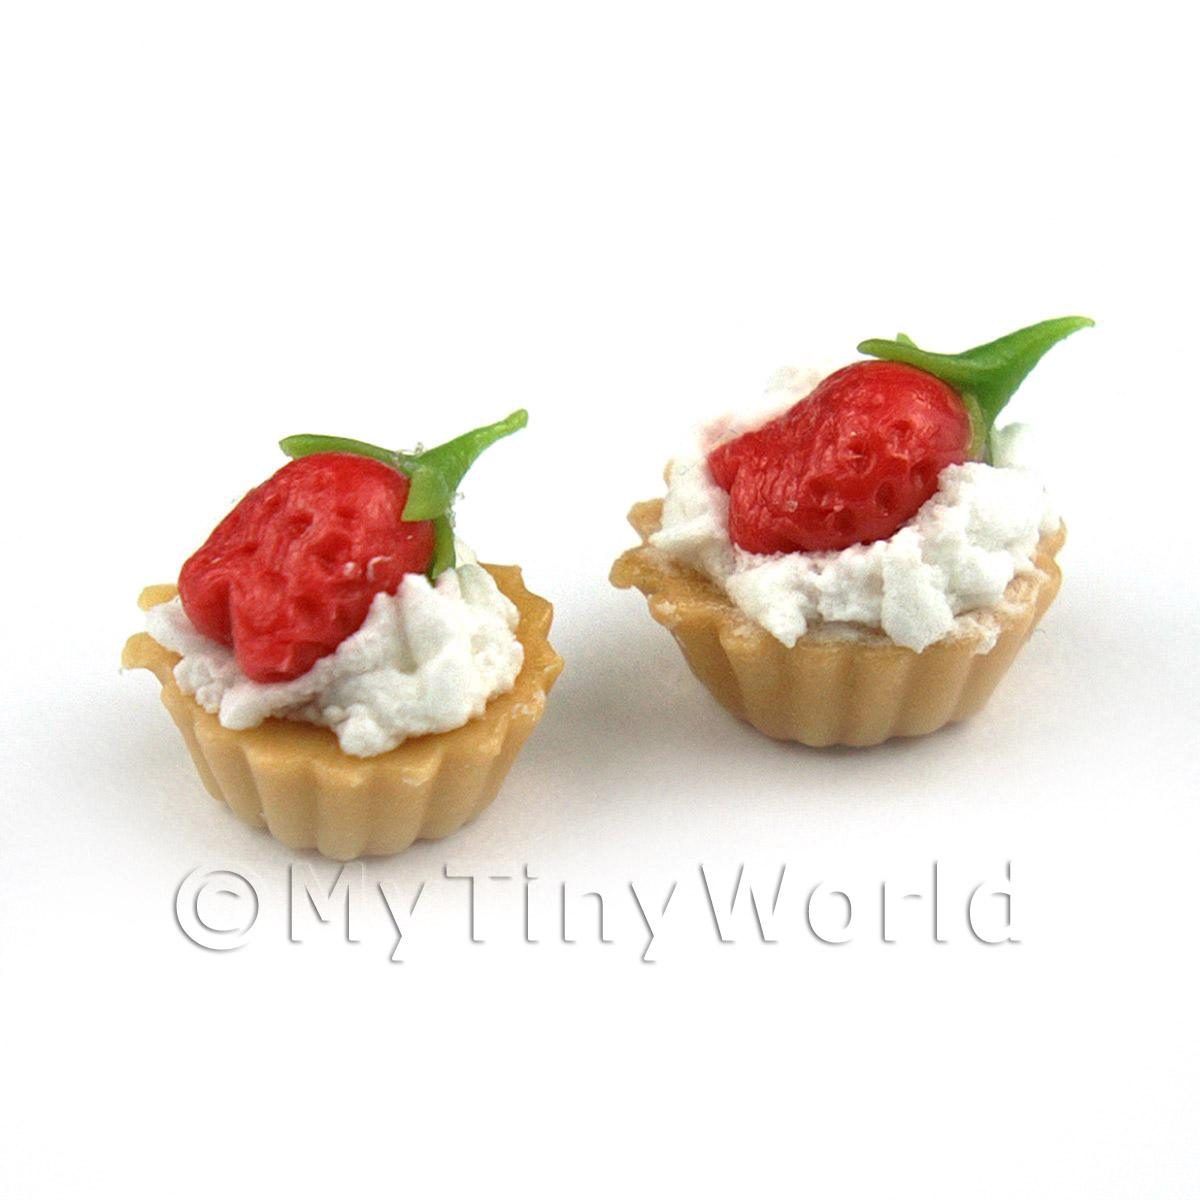 Dolls House Miniature Loose Whole Strawberry and Cream Tart